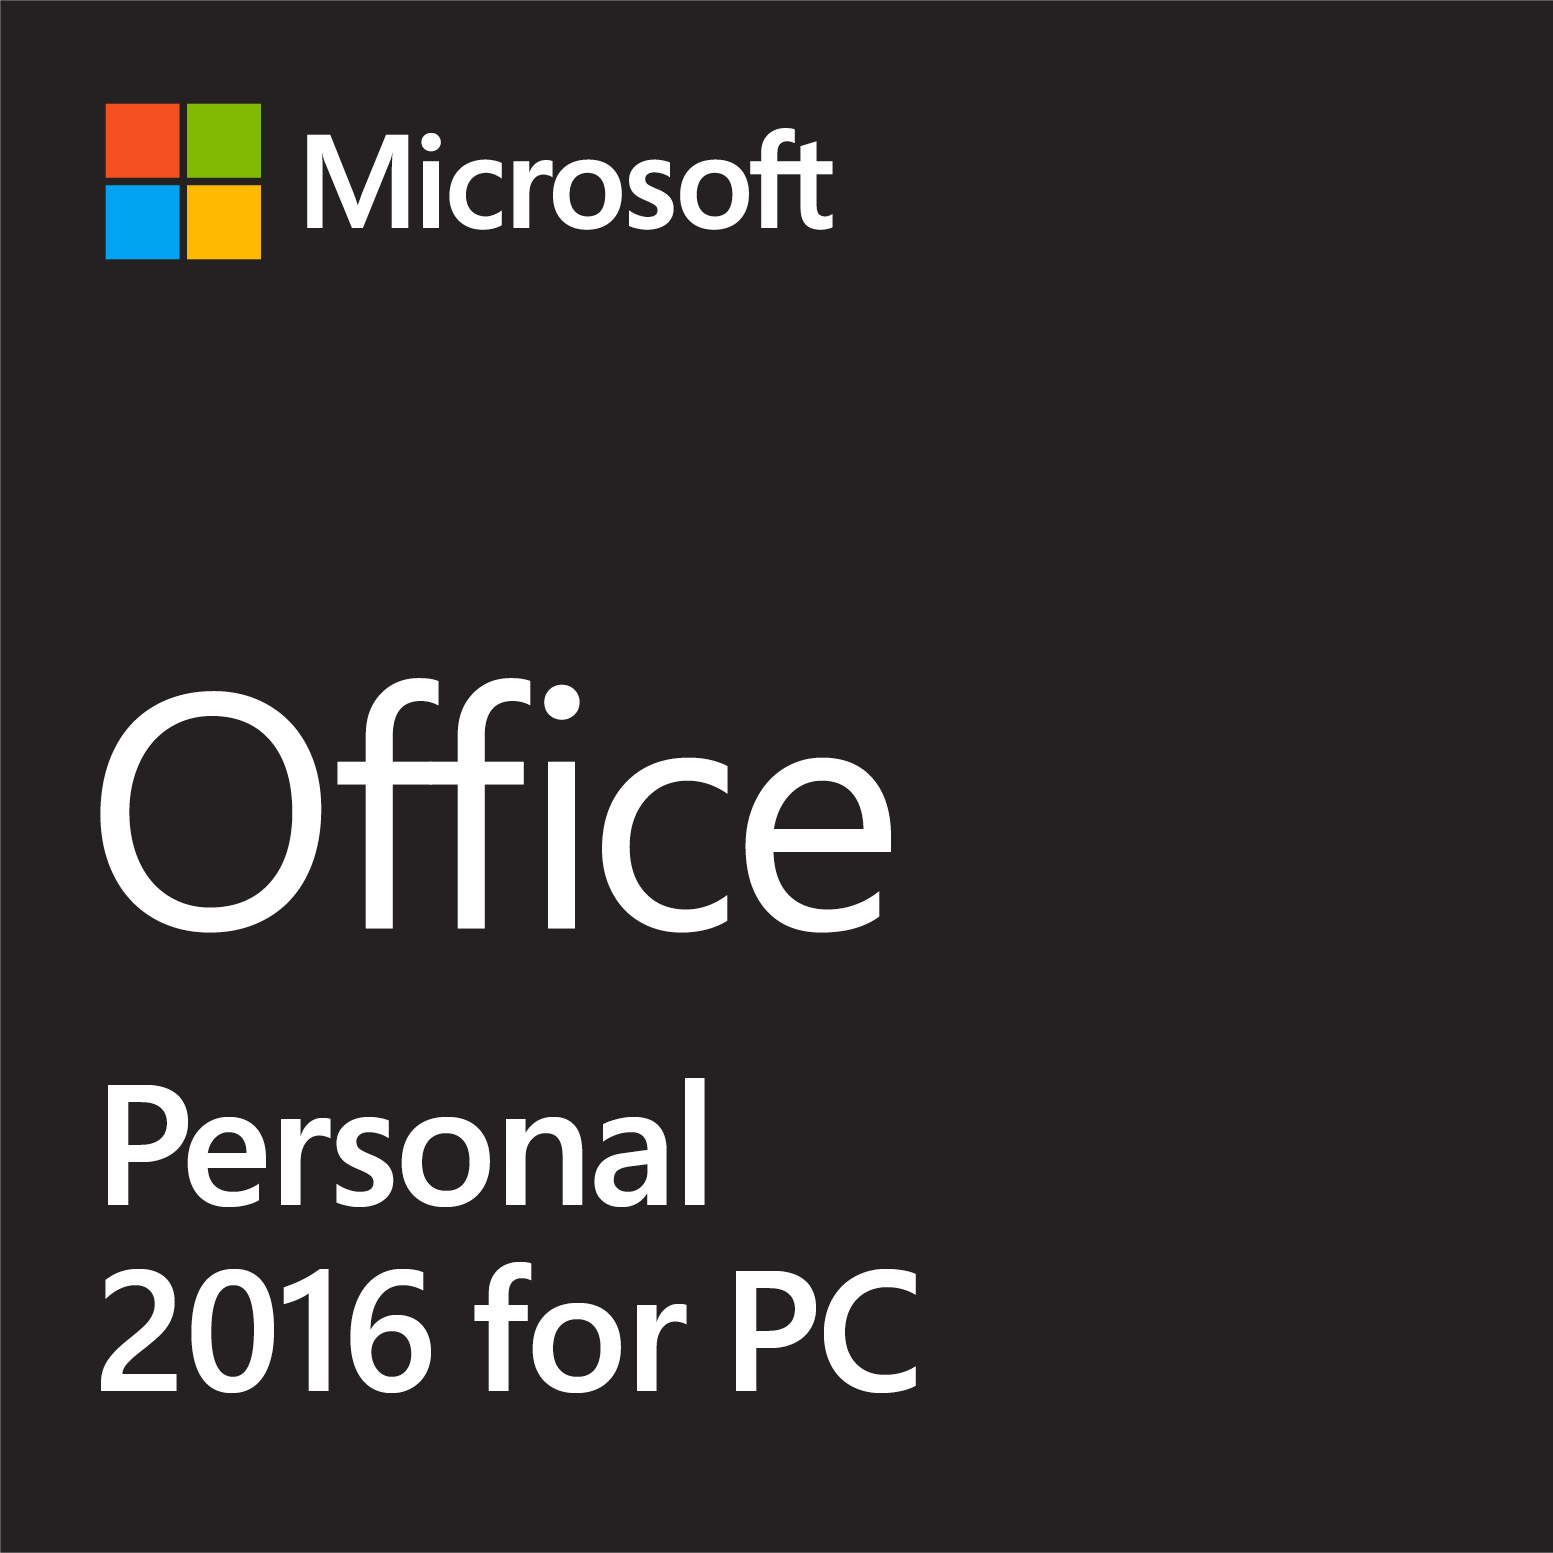 Office Personal 2016